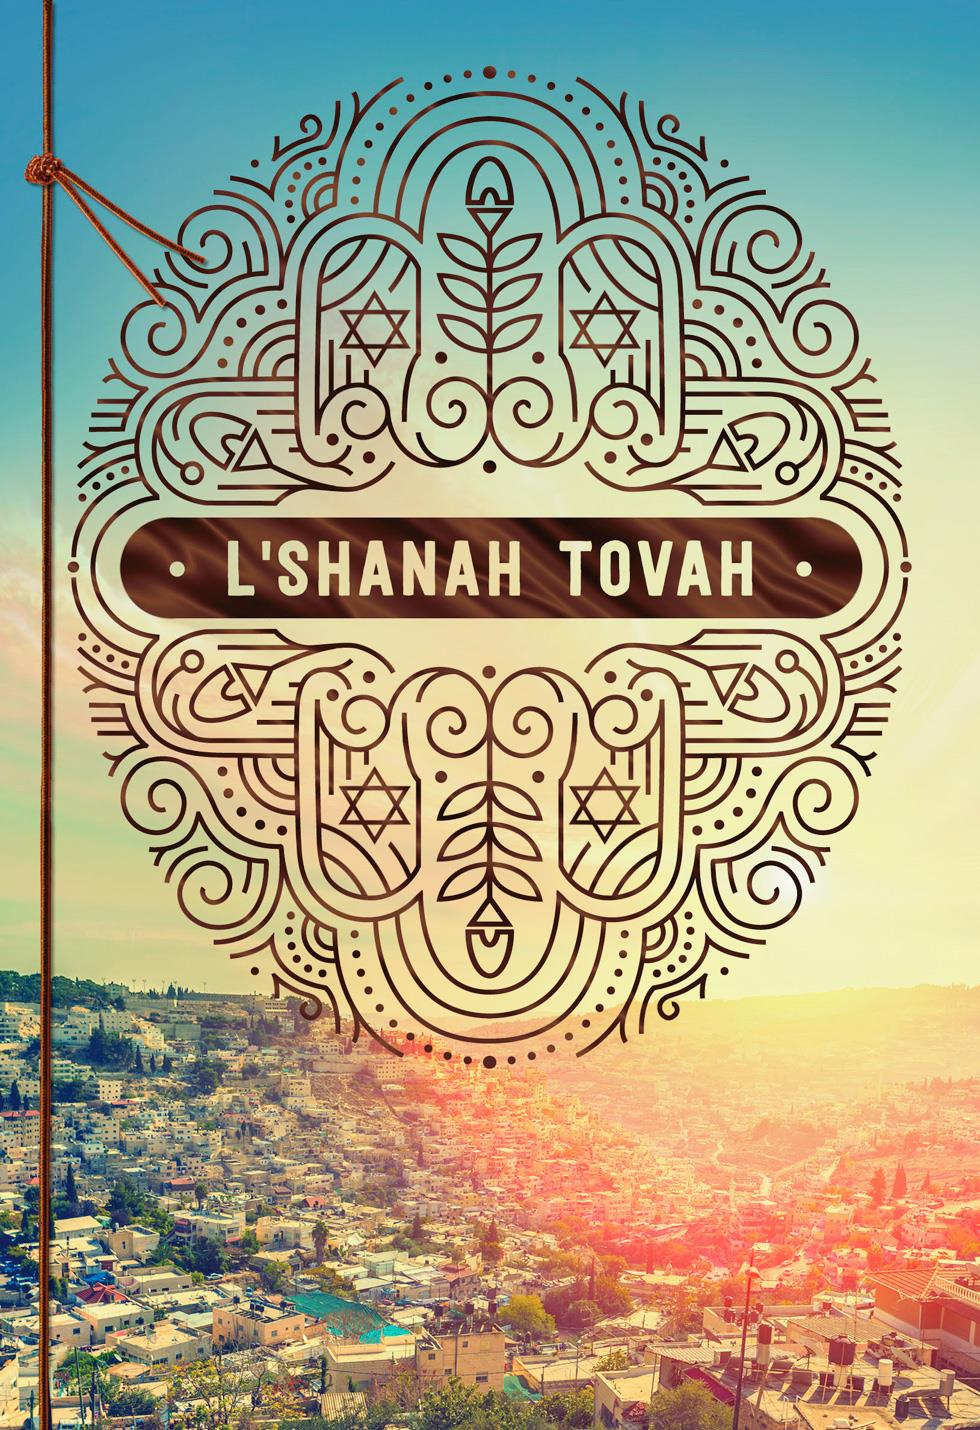 A Year Of Many Blessings Rosh Hashanah Card Greeting Cards Hallmark